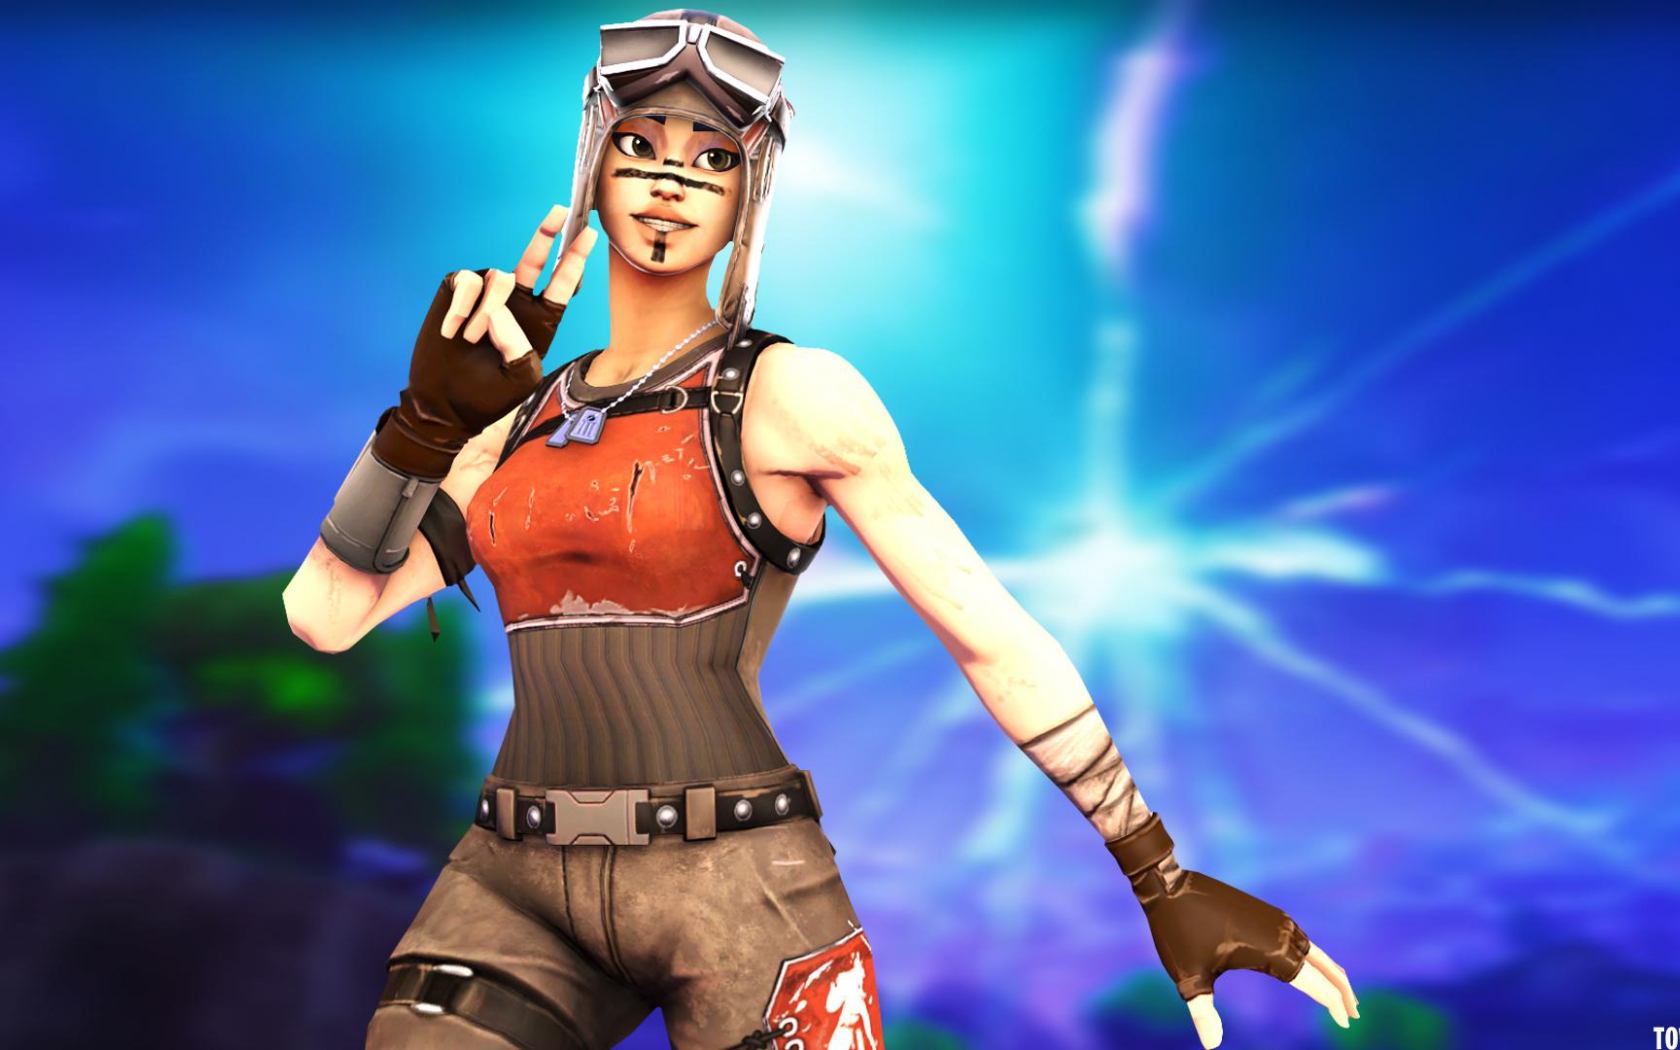 Free Download Thumbnail Images Fortnite Fortnite Cheat Codes Ipad 1920x1080 For Your Desktop Mobile Tablet Explore 20 Fortnite Thumbnail Wallpapers Fortnite Thumbnail Wallpapers Cs Go Wallpapers Thumbnail Fortnite Wallpapers